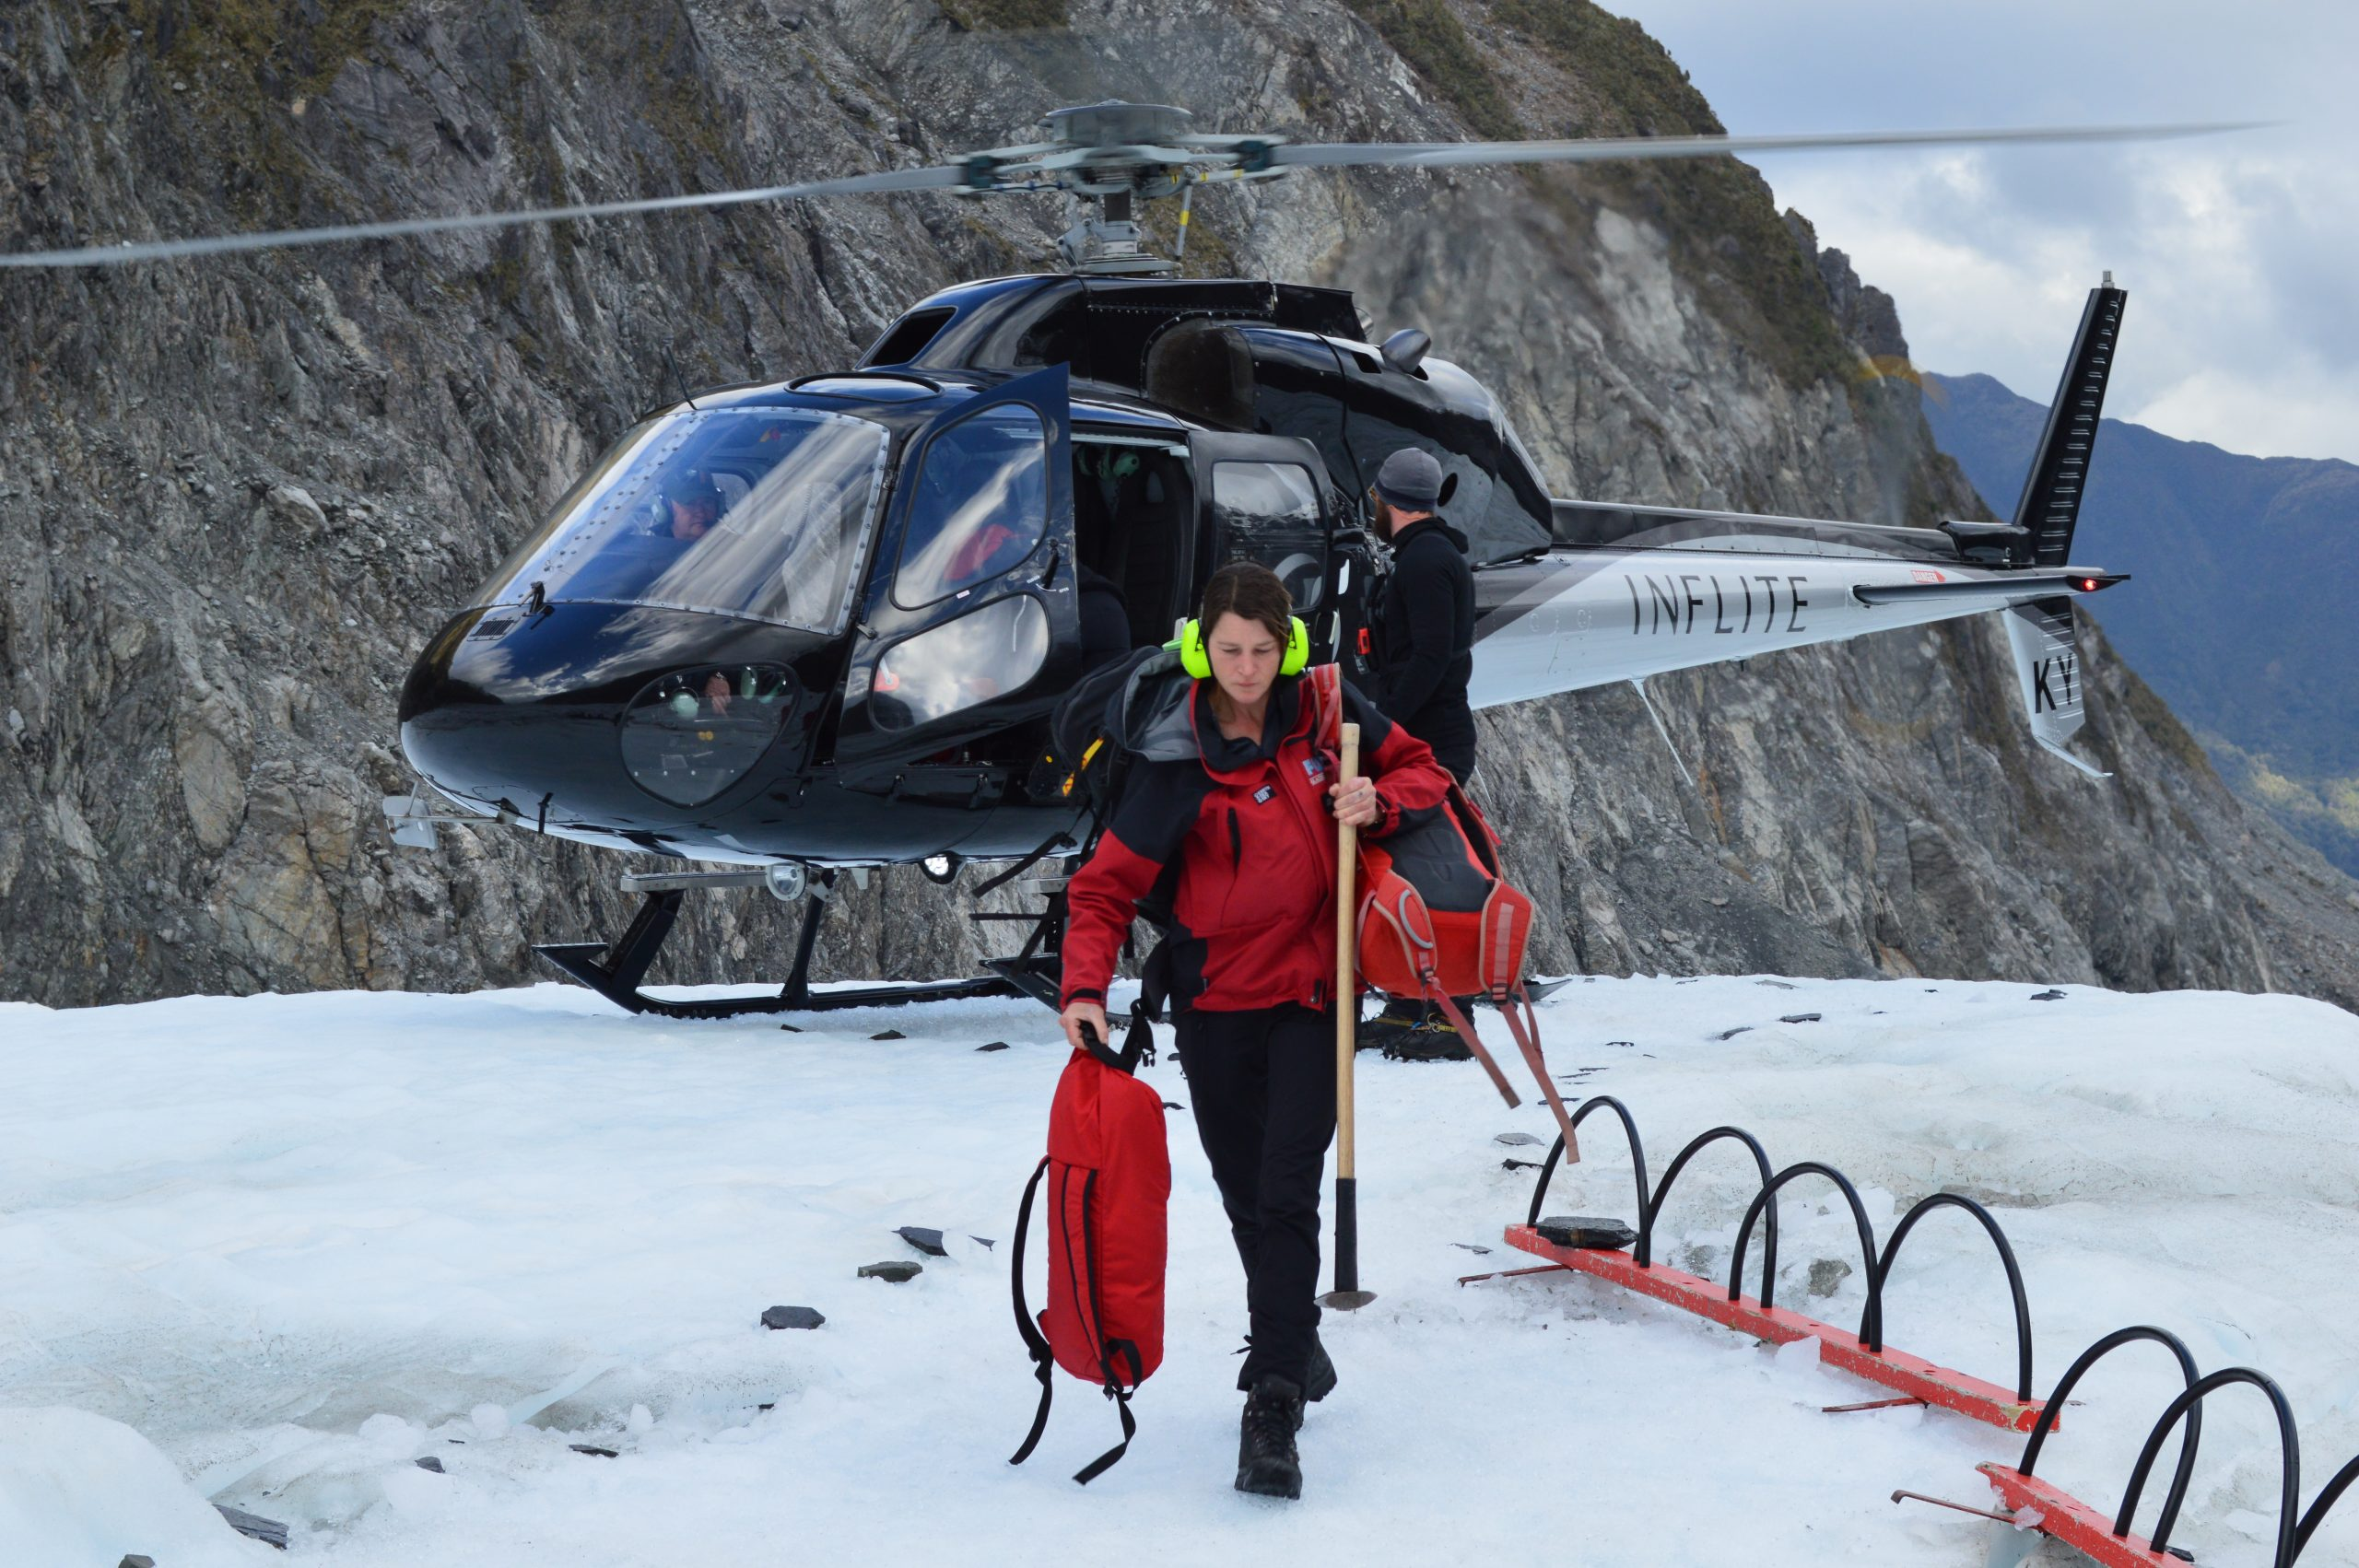 Disembarking from the helicopter onto the glacier